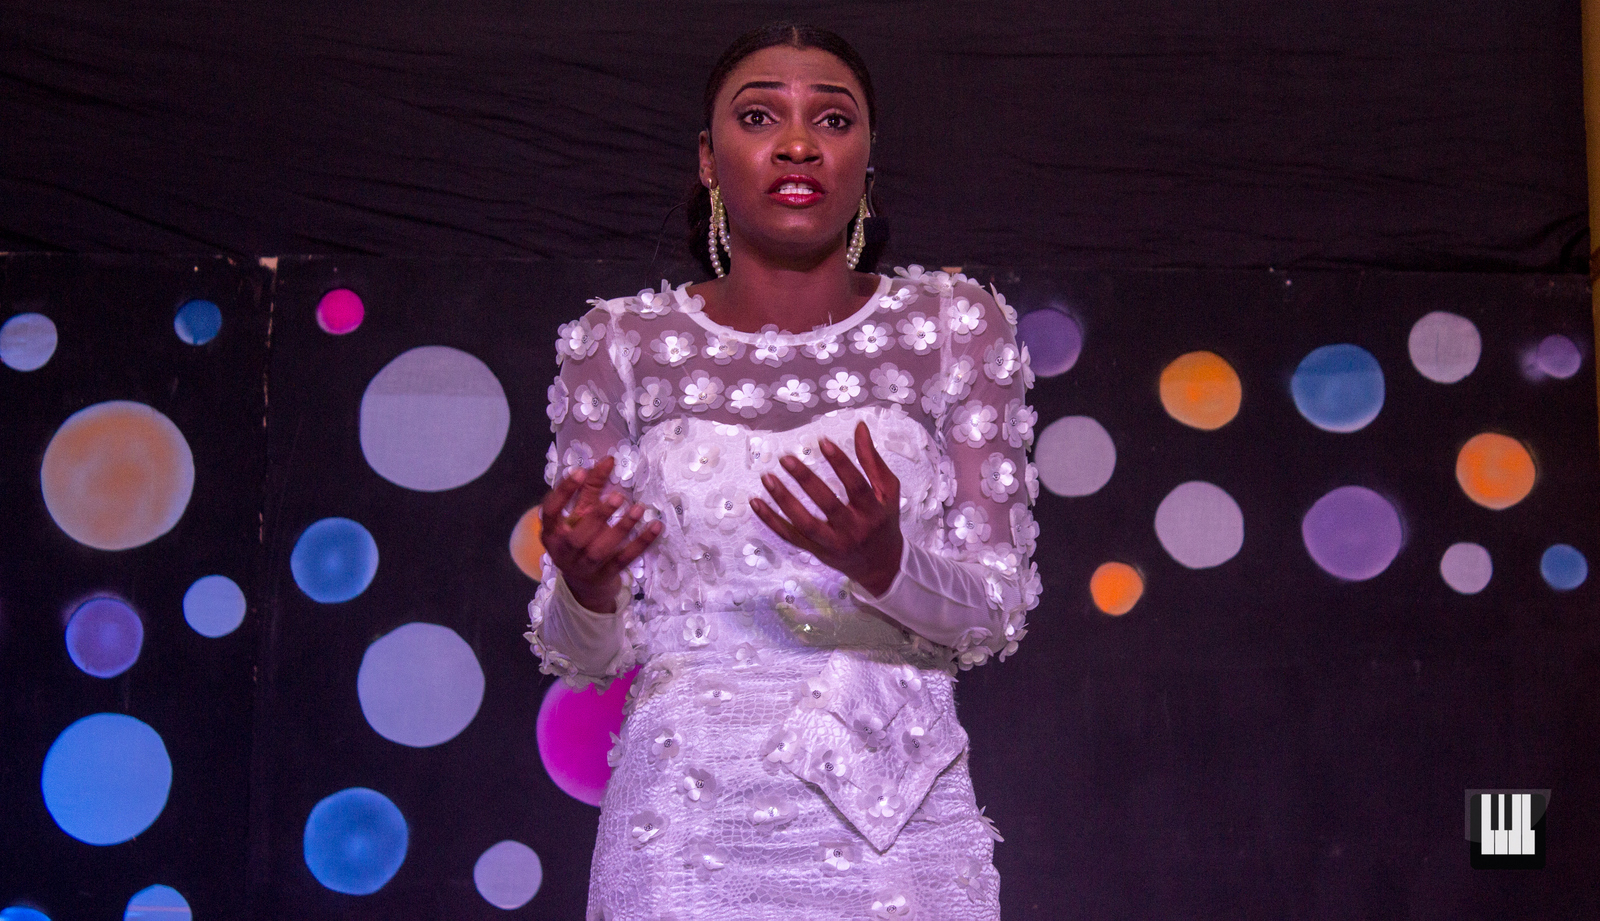 Classical Laughs: The Genius Behind the Music Jesse got in touch with Elizabeth Naa Ashami Boakye, soloist with LUMINA, member of Harmonious Chorale and Music Director and Talent Manager at Extreme Productions, the producers of Classical Laughs.